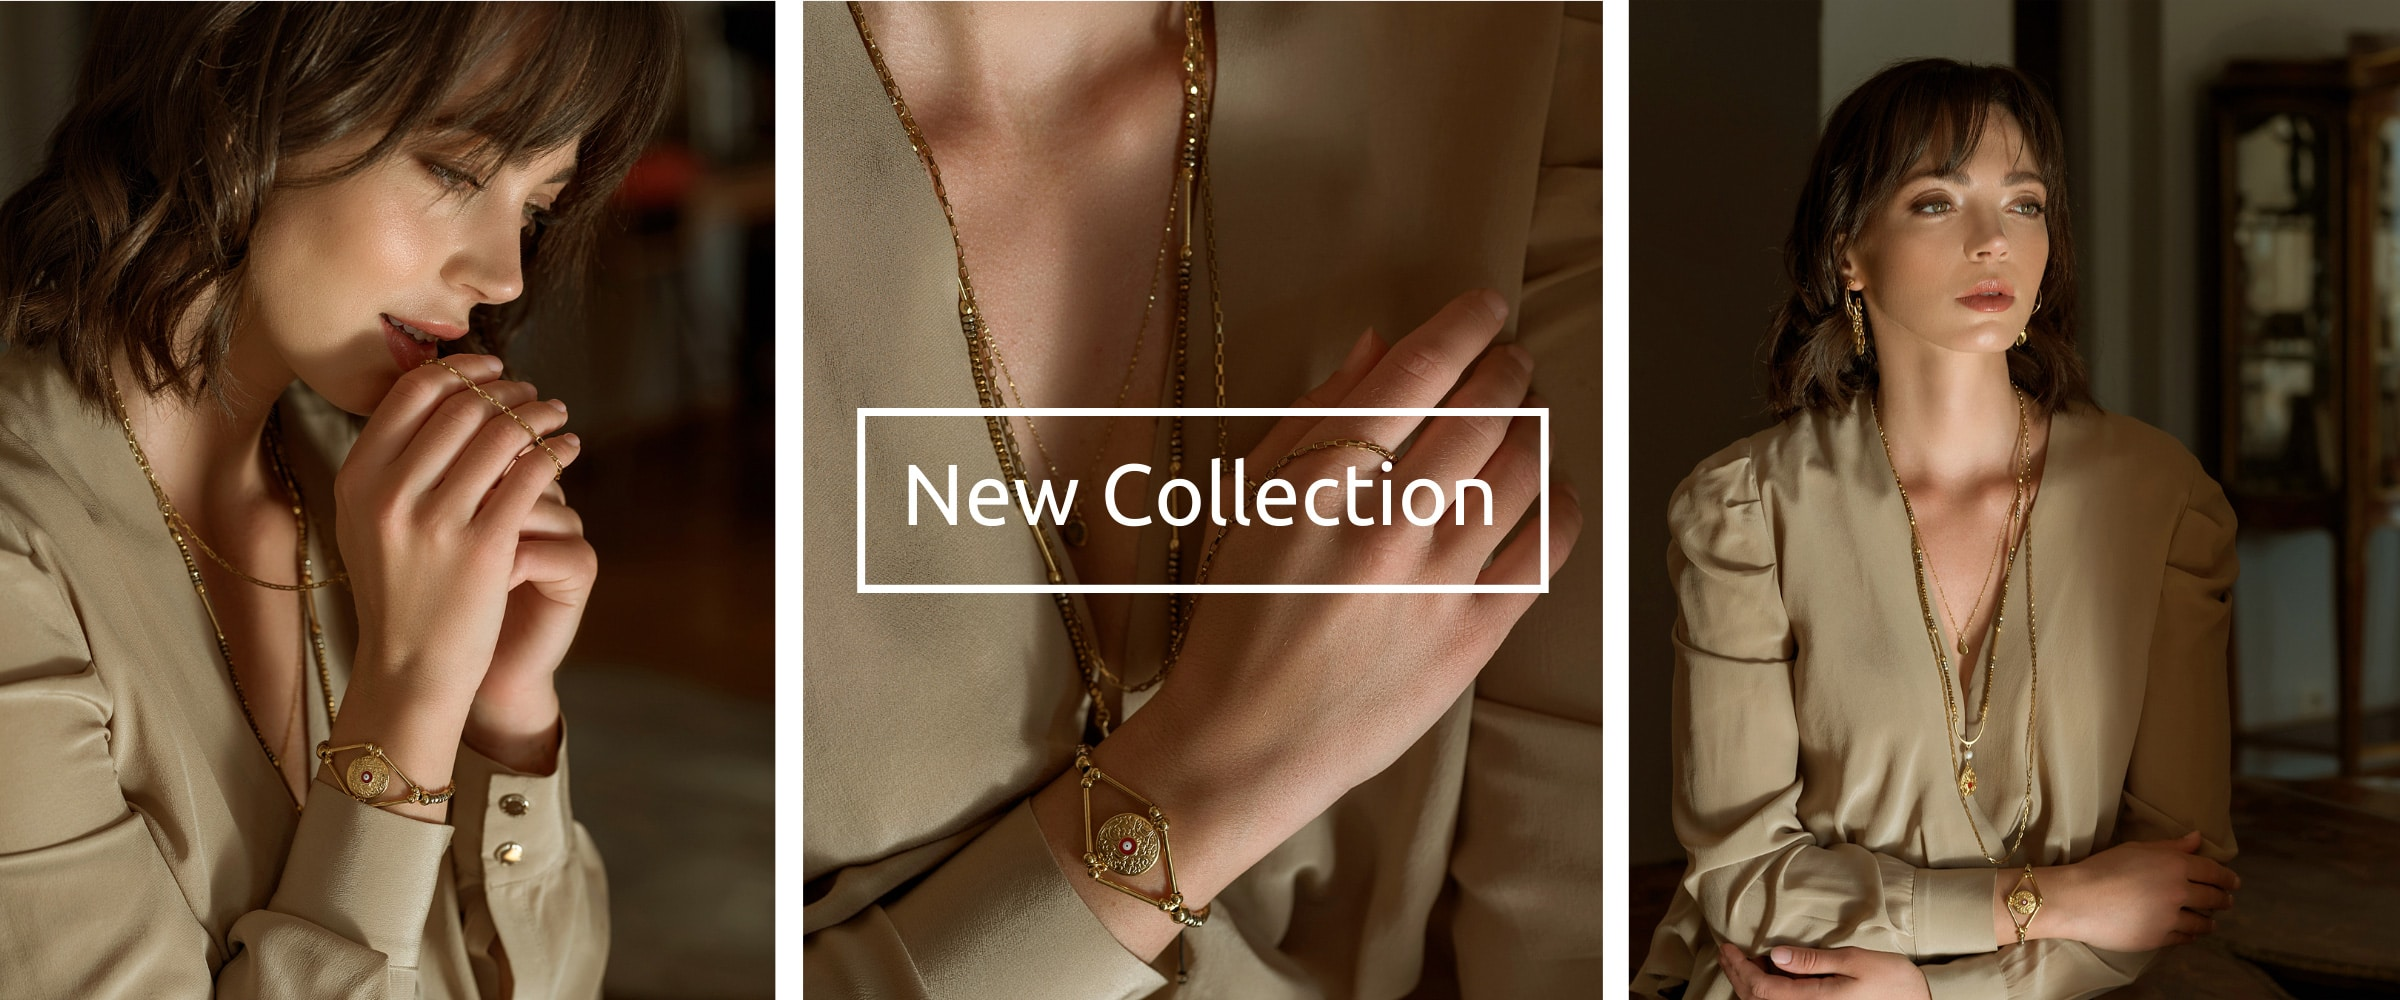 new-collection-bracelets